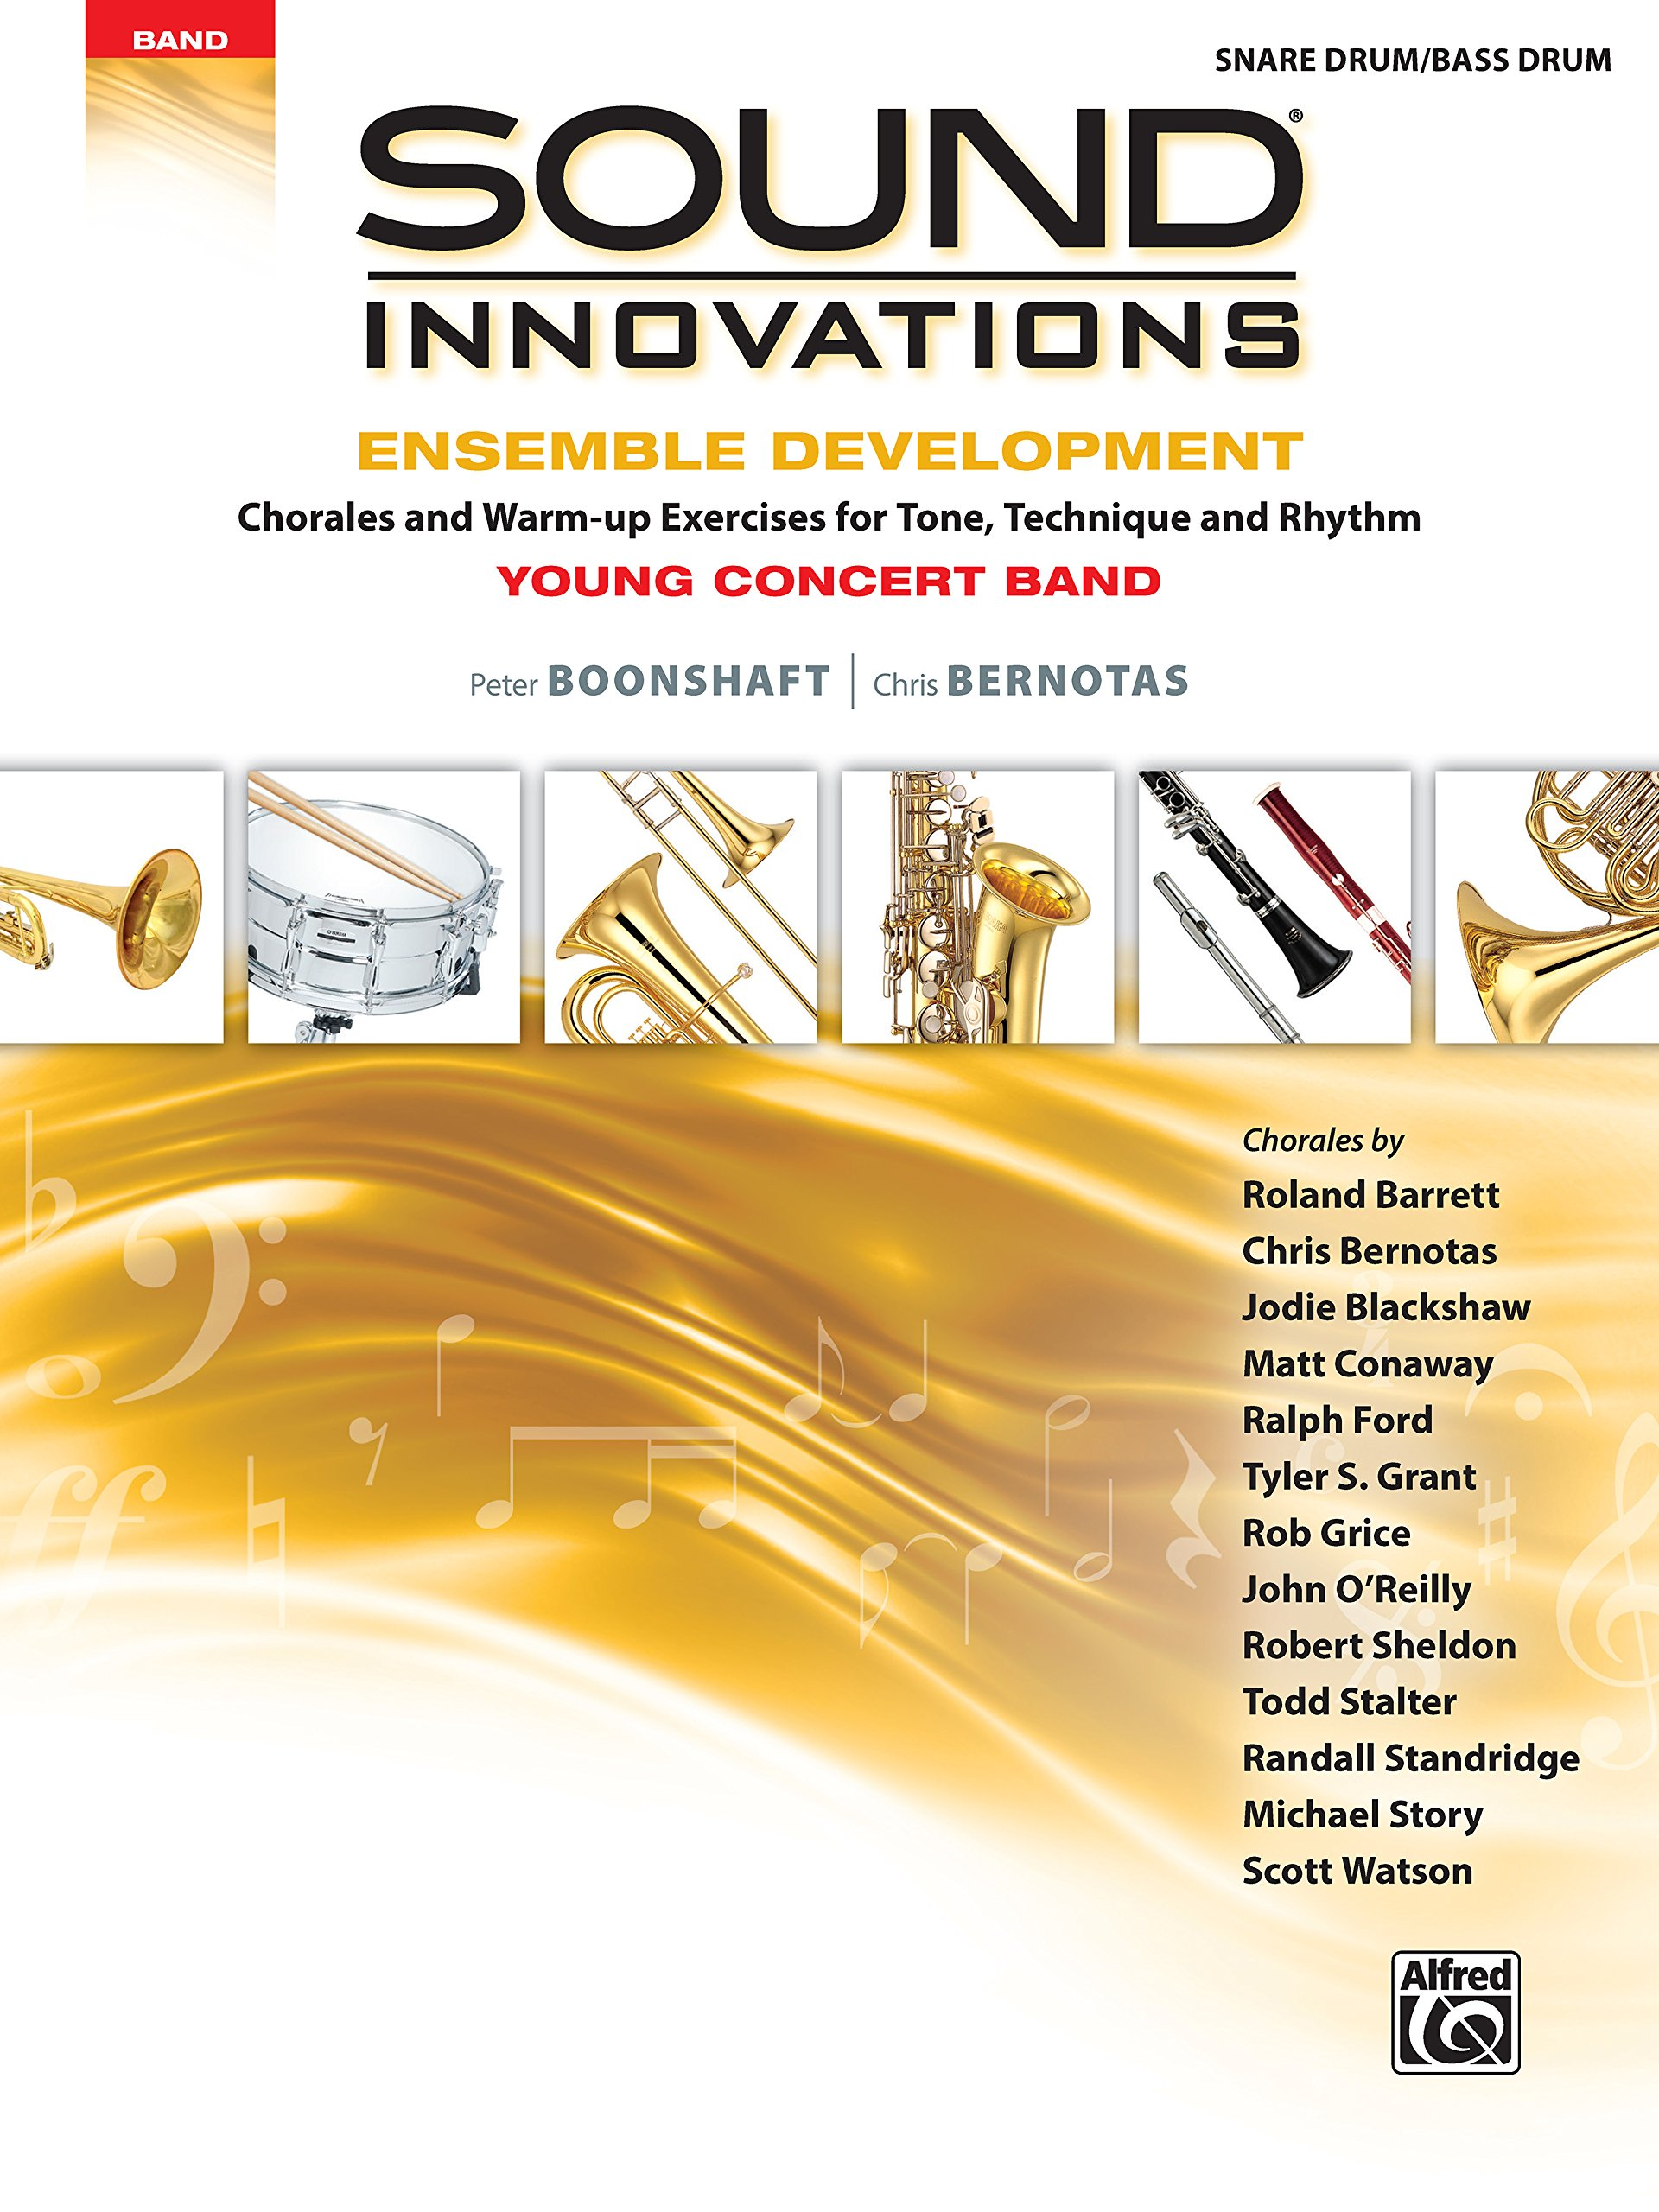 Read Online Sound Innovations for Concert Band -- Ensemble Development for Young Concert Band: Chorales and Warm-up Exercises for Tone, Technique, and Rhythm (Snare Drum/Bass Drum) pdf